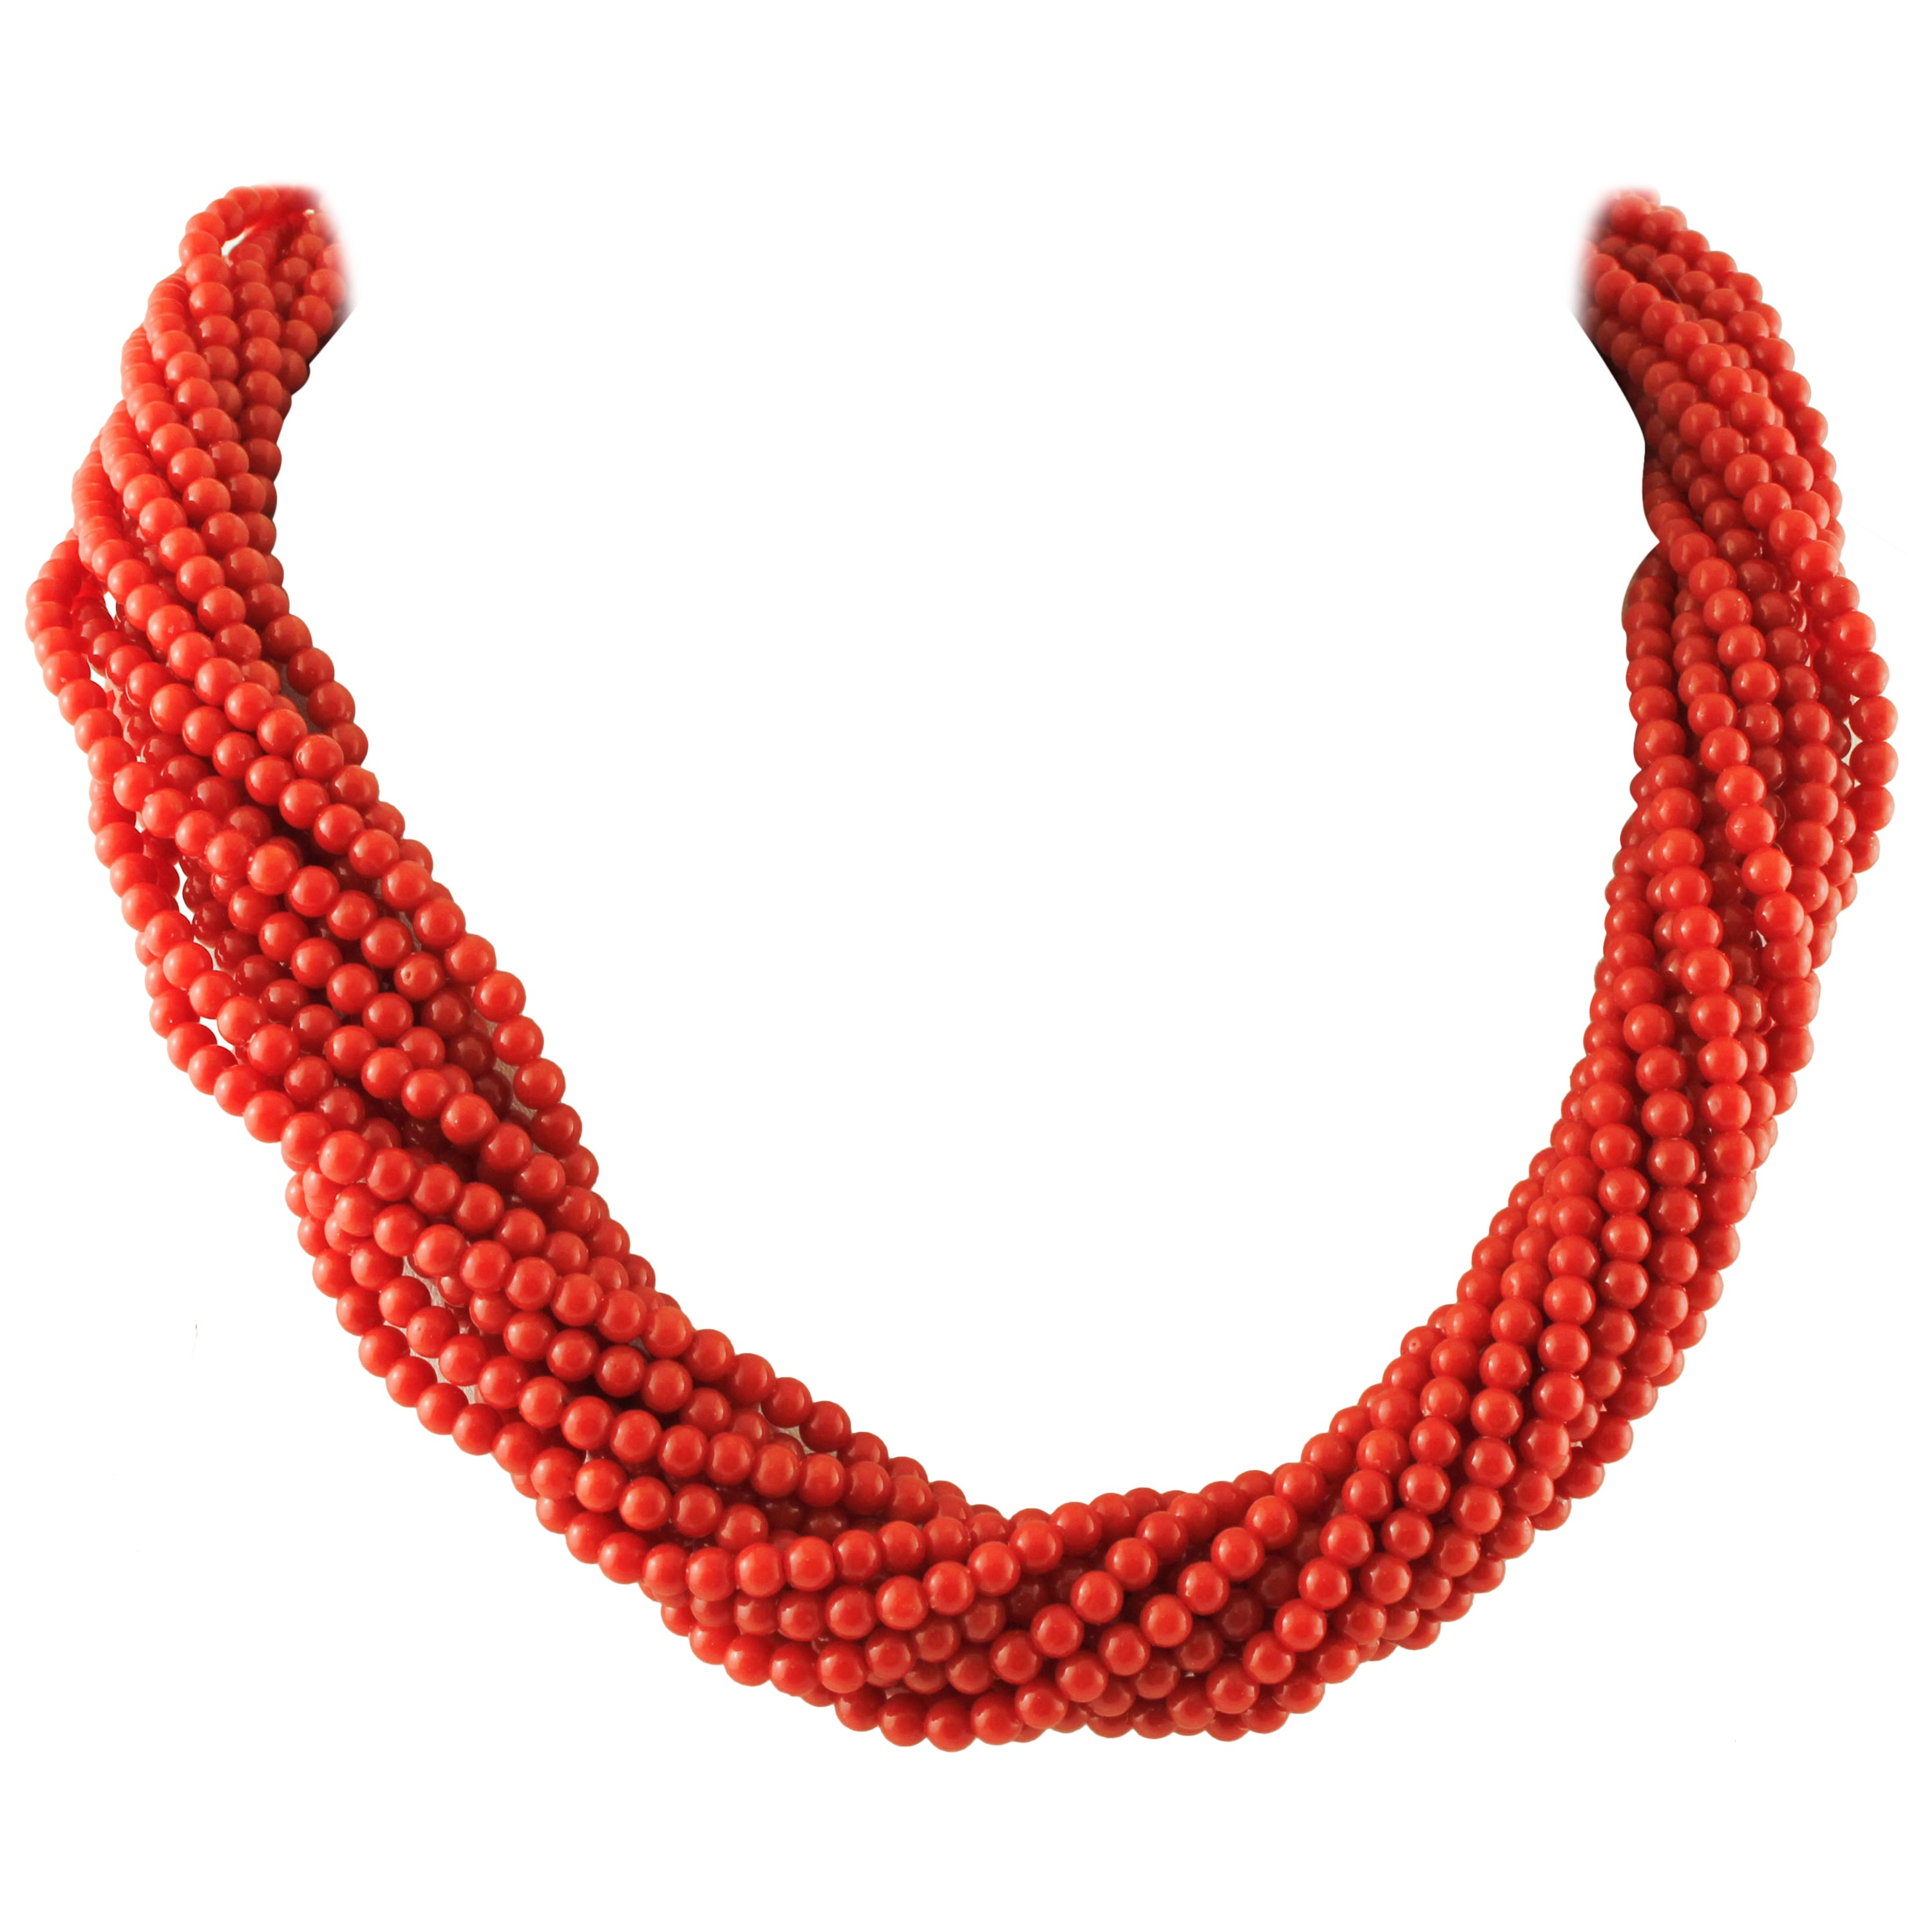 Intertwined Multi-Strands Red Beaded Coral Necklace 18K Yellow Gold Closure